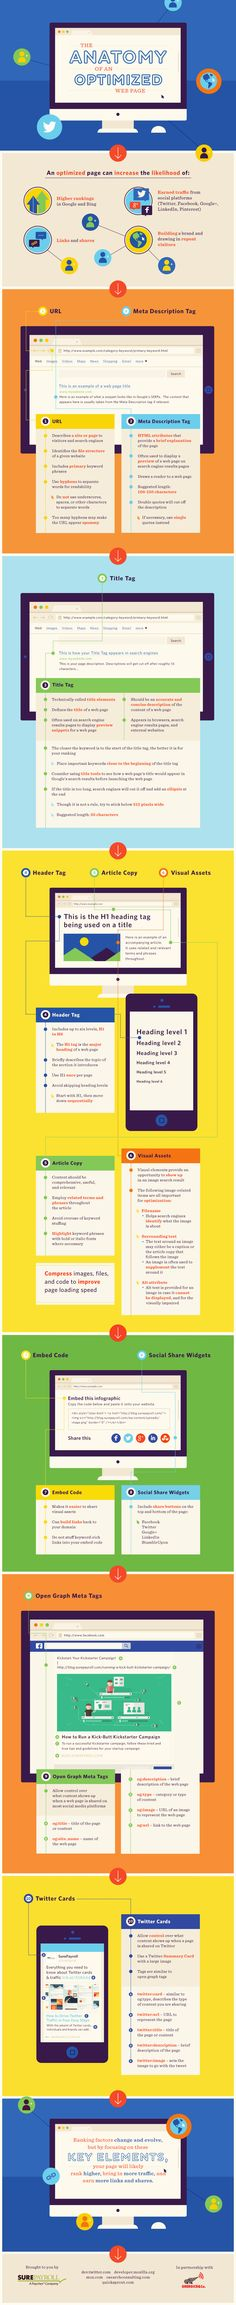 The anatomy of an optimised web page. Did you add your keywords to your URL? Is your meta description concise and accurate? Have you used alt tags on all images? Does your copy flow well? Love this informative infographic from SurePayroll's Payroll Blog. #WebDesign #Optimisation